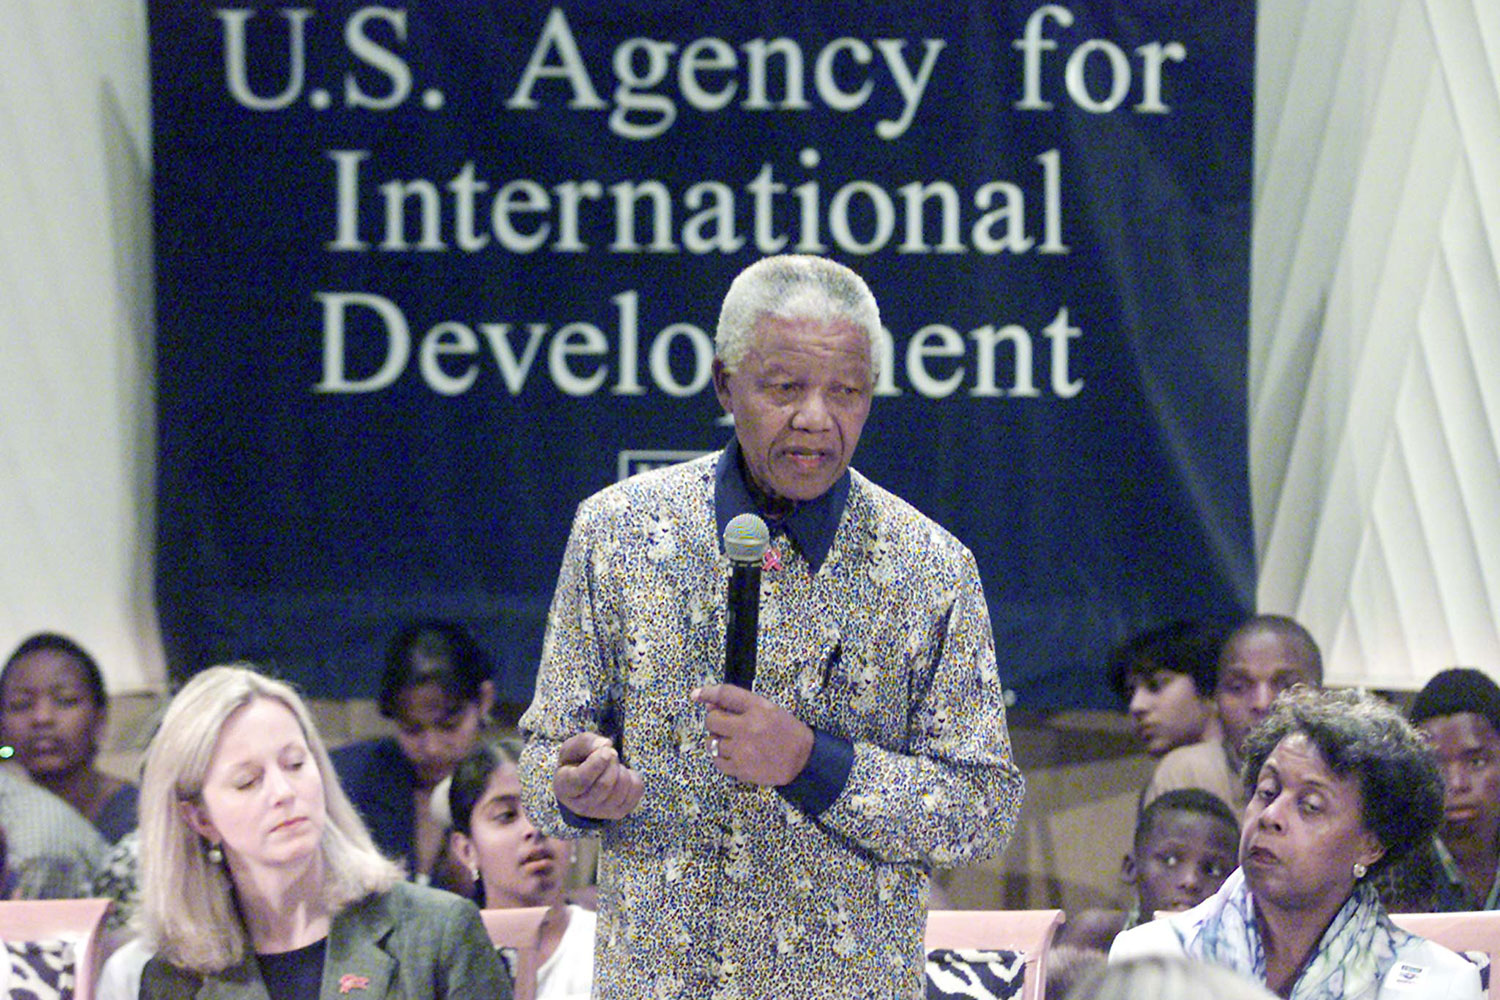 "Image shows Nelson Mandela speaking into a microphone before a sign that reads, ""U.S. Agency for International Development"" at the International AIDS Conference in Durban, South Africa on July 14, 2000. He is standing and is surrounded by people who are sitting and appear to be listening intently."